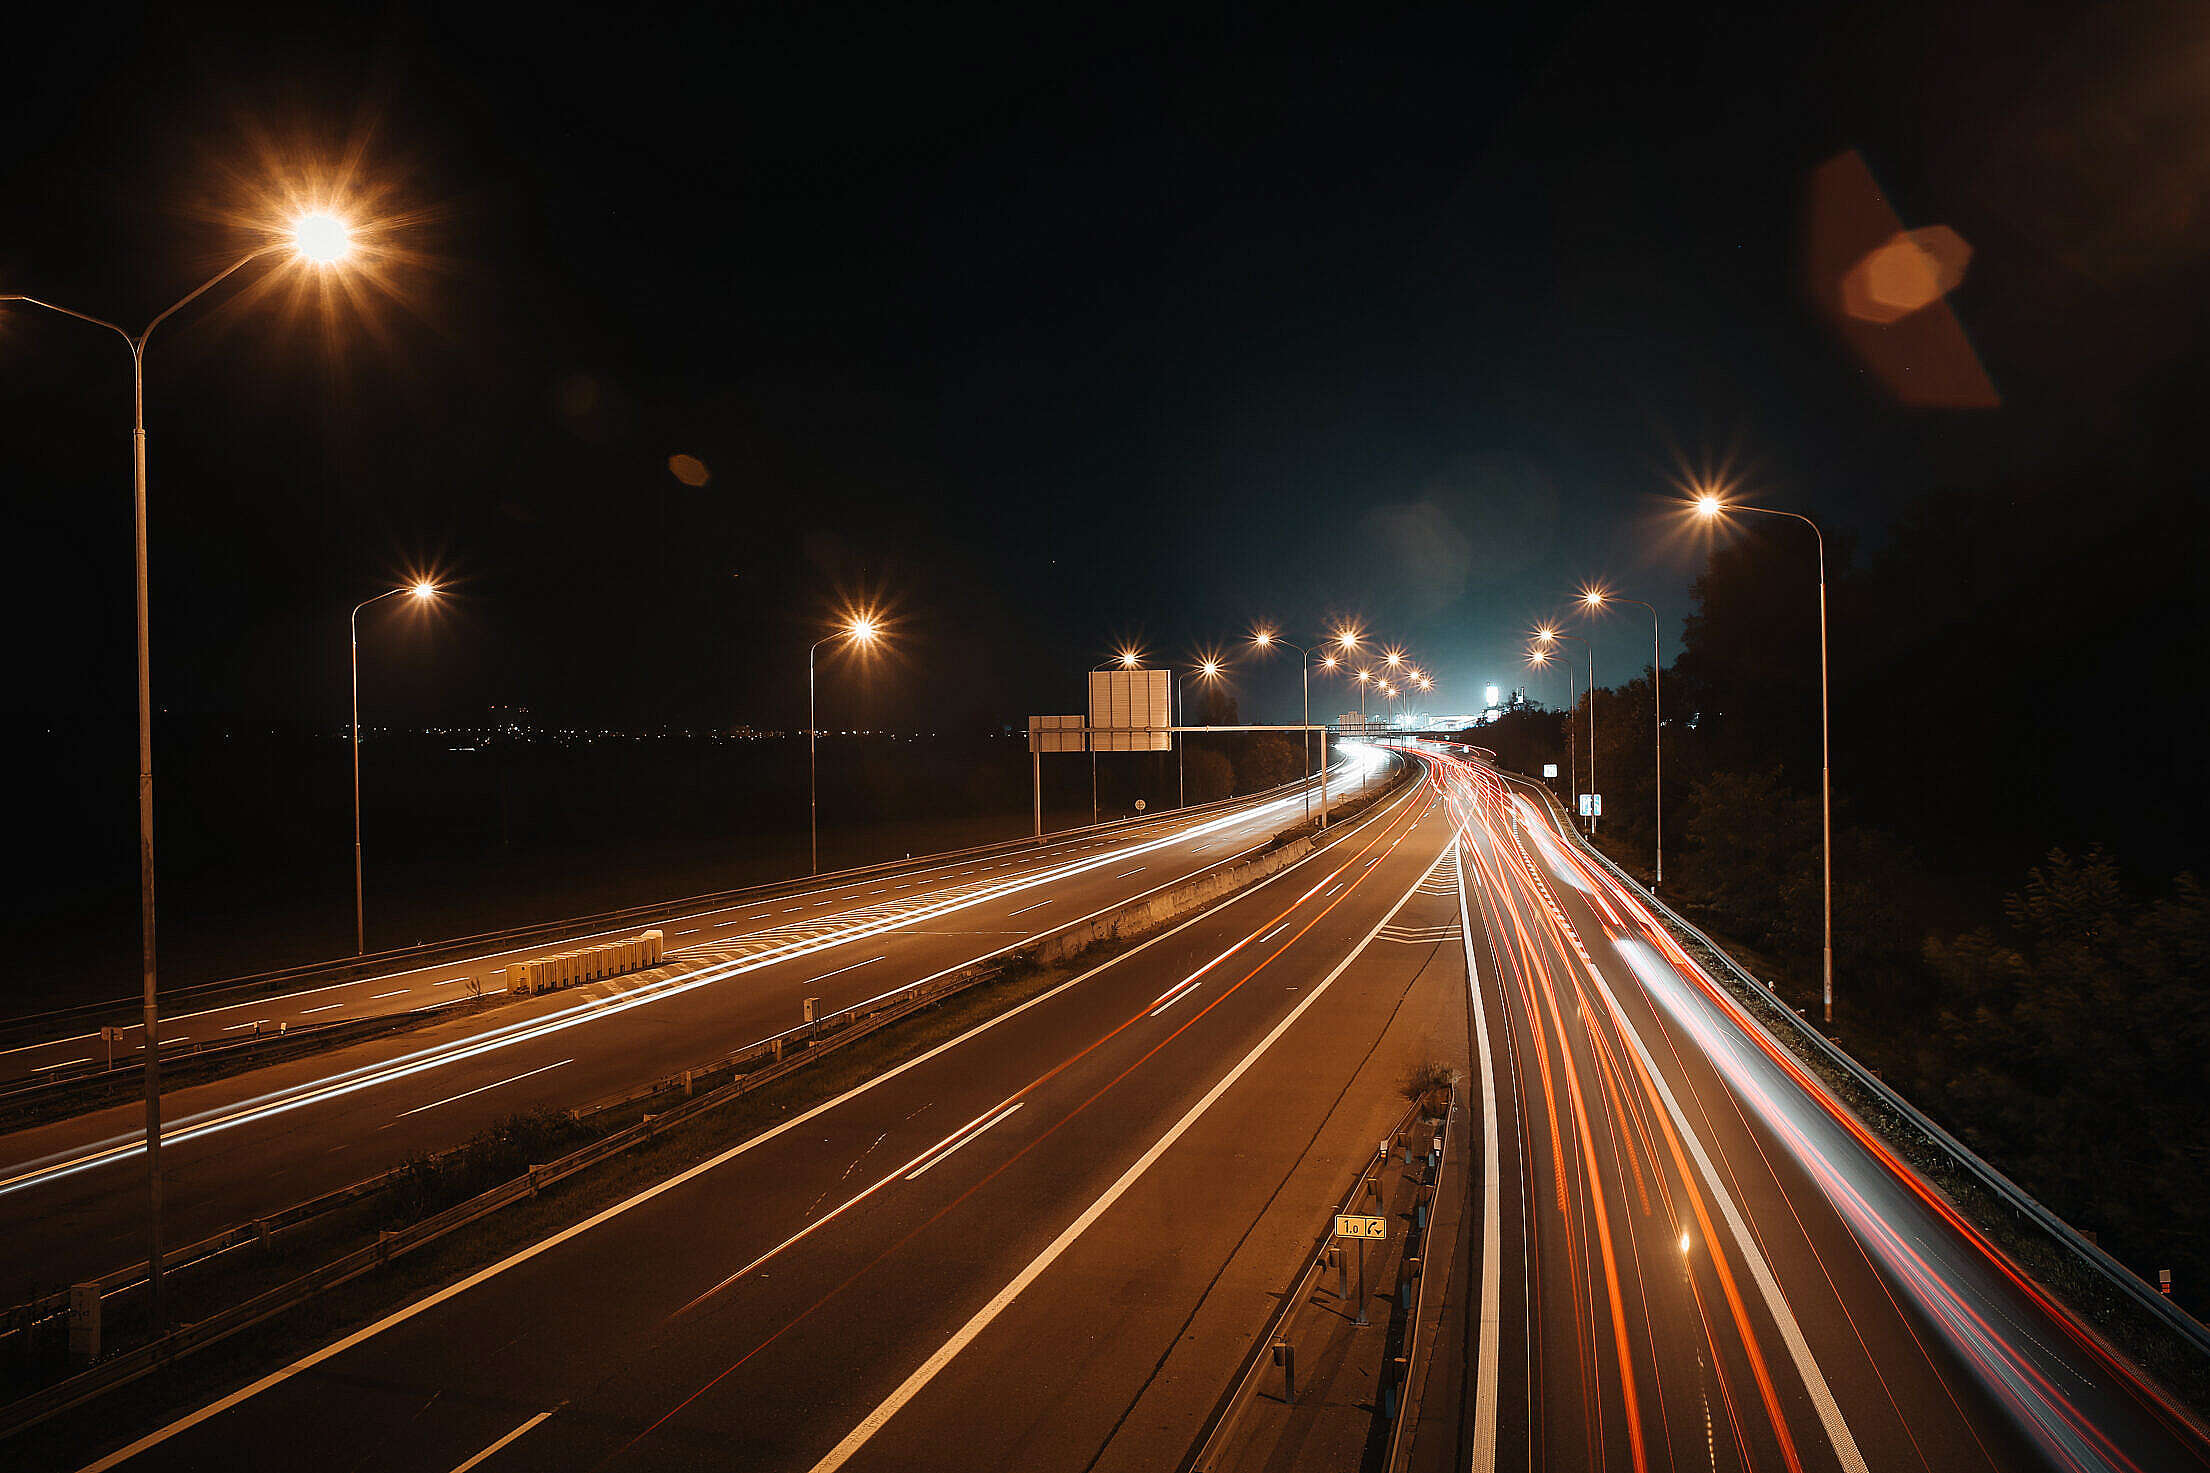 Night Car Lights on The Road Free Stock Photo